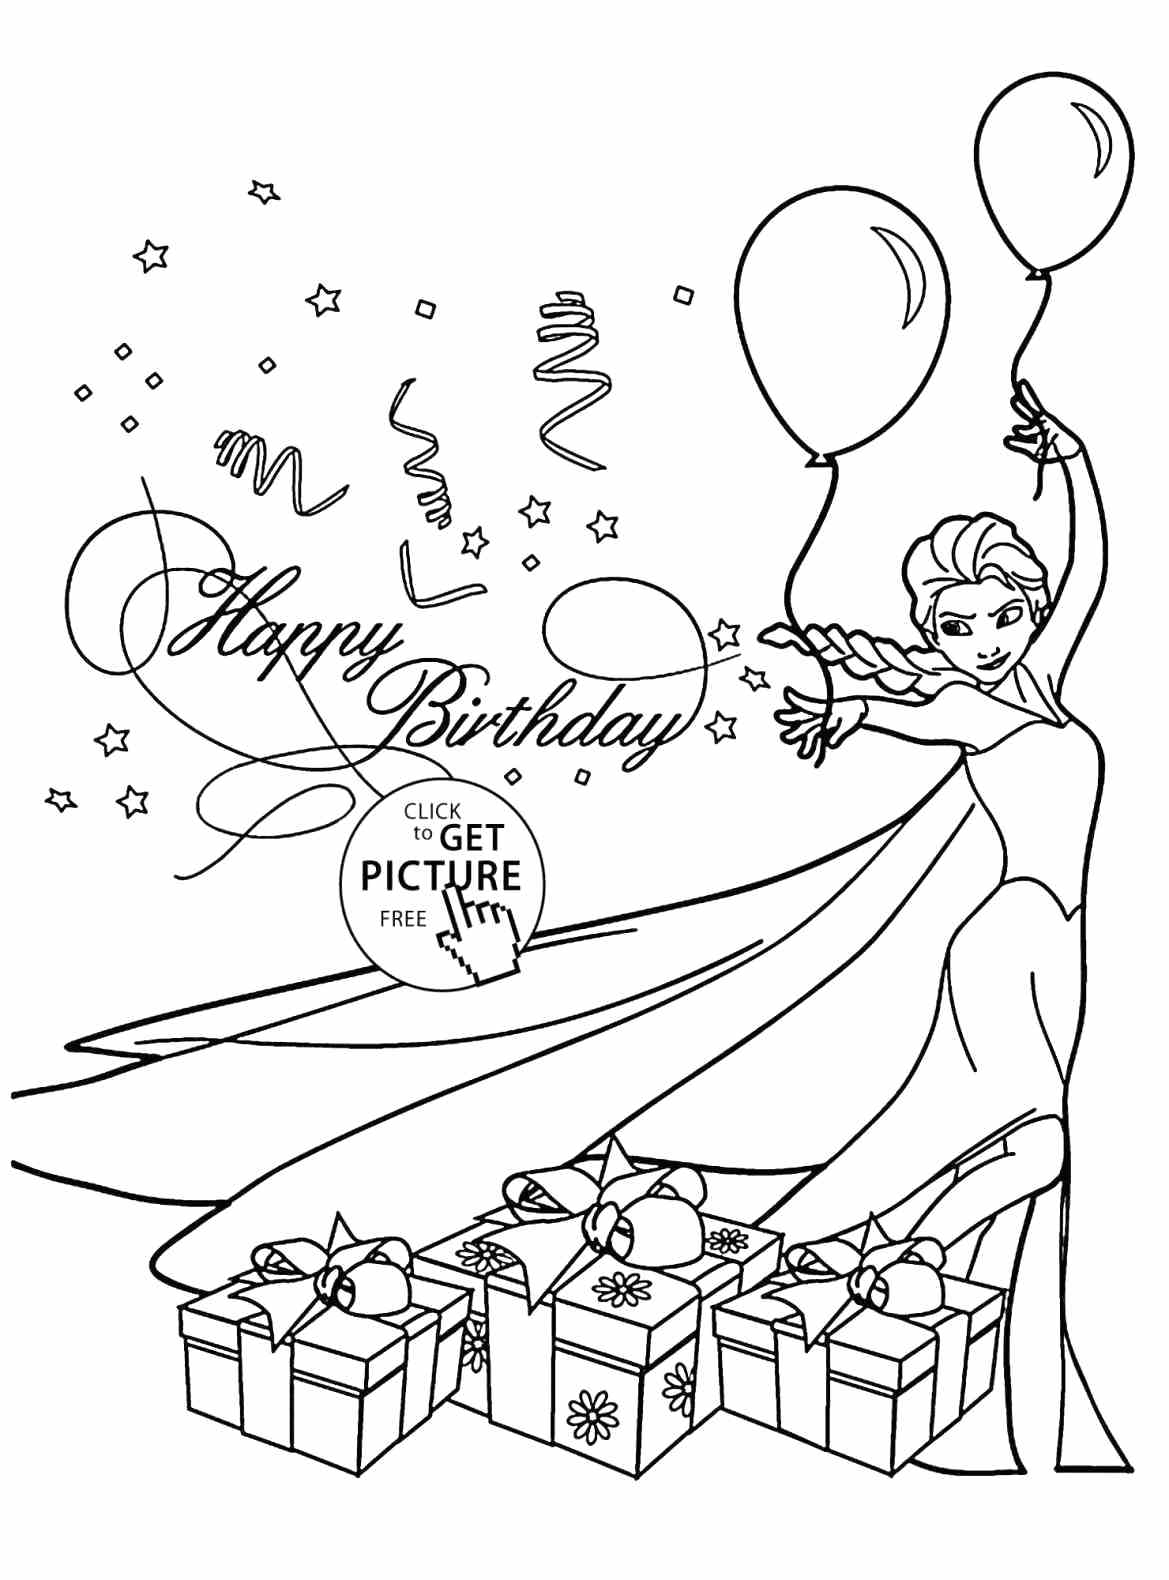 Birthday Cards Drawing at GetDrawings.com | Free for ...